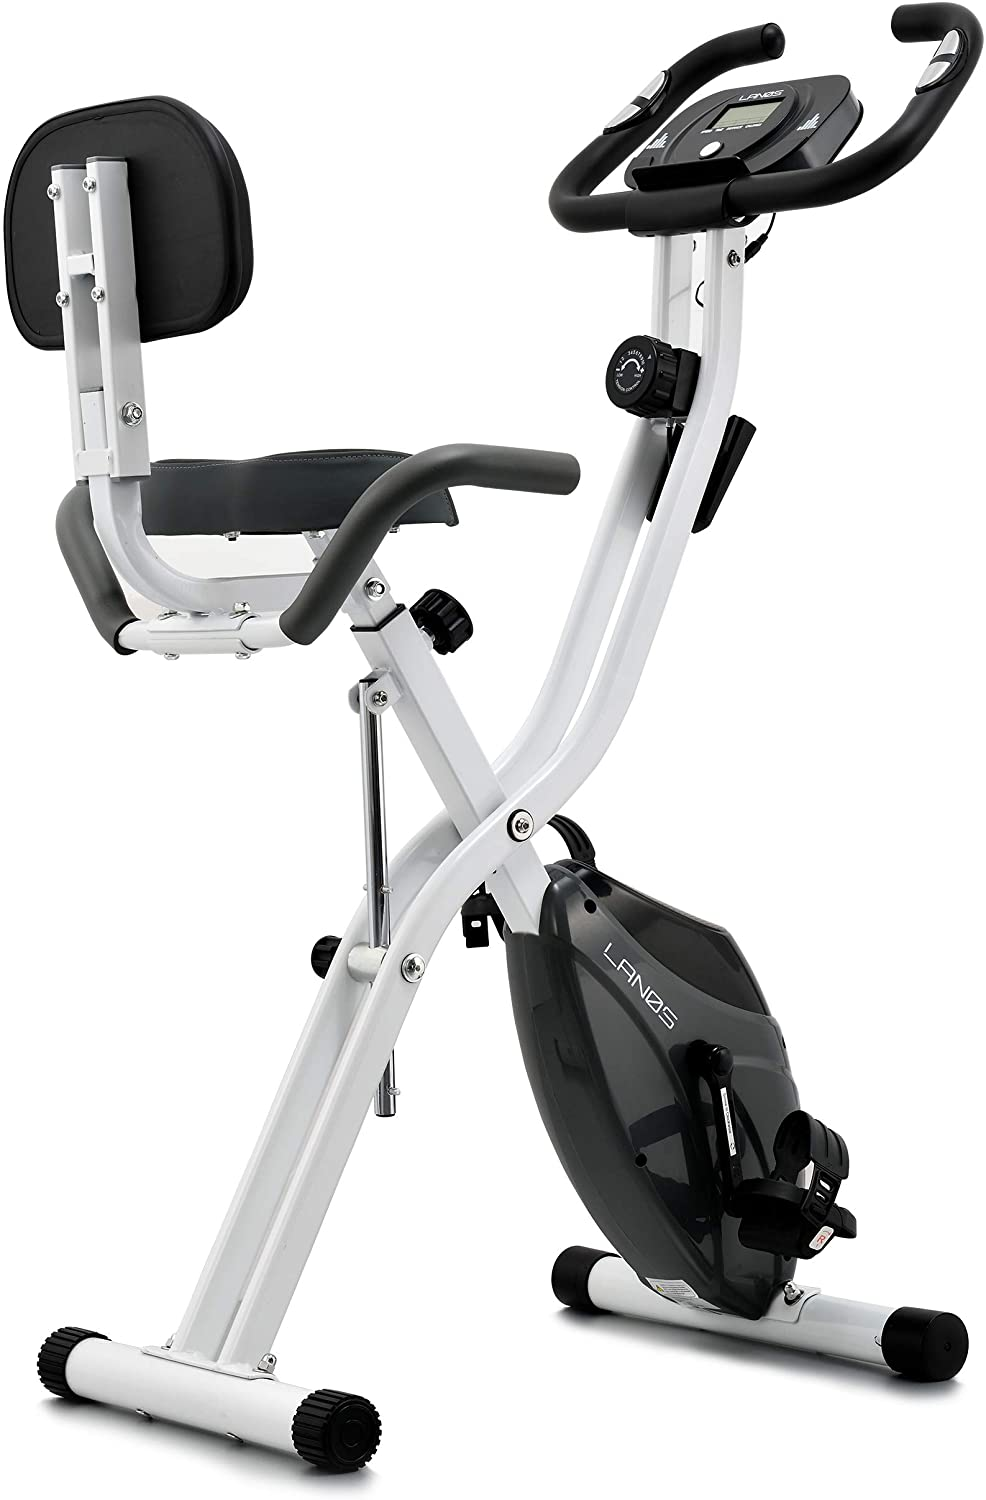 Top 10 Best Folding Exercise Bike Reviews 2020 6